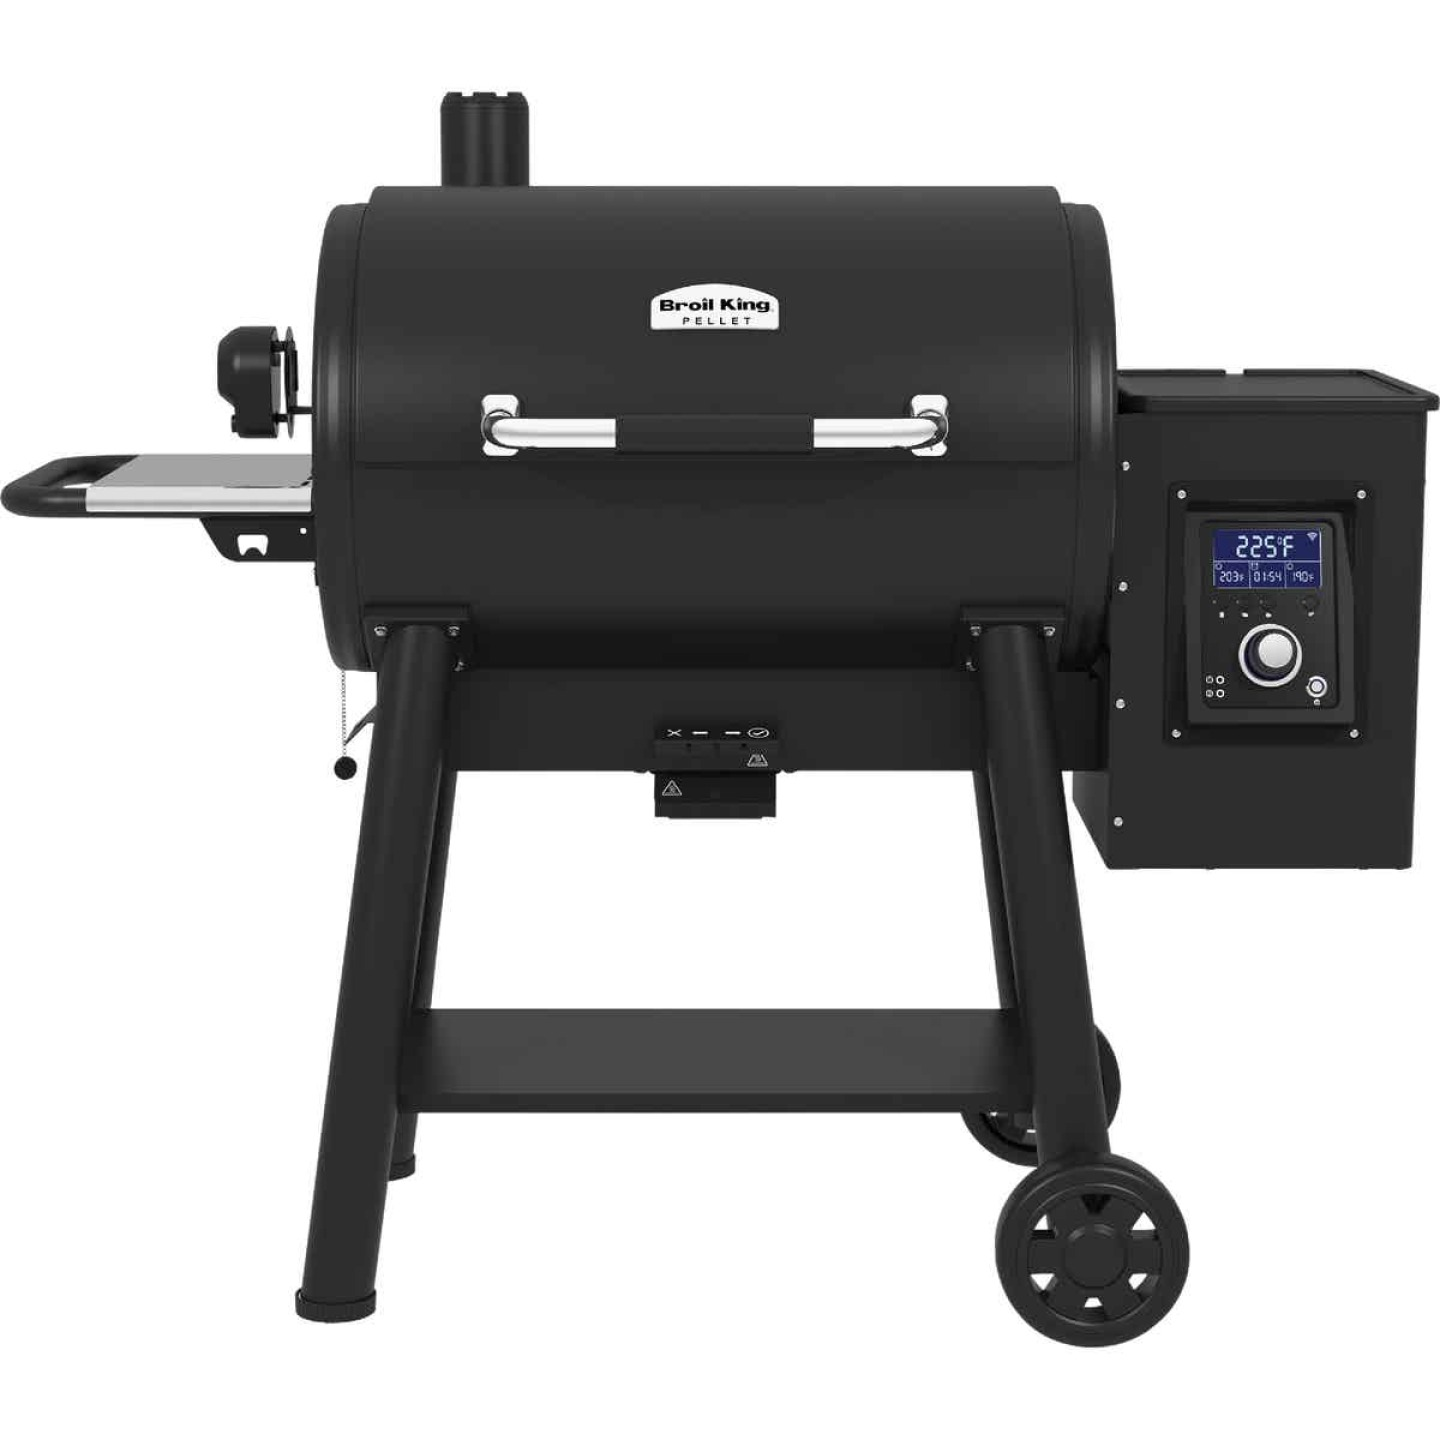 Broil King Regal Pellet 500 Black 865 Sq. In. Grill Image 1